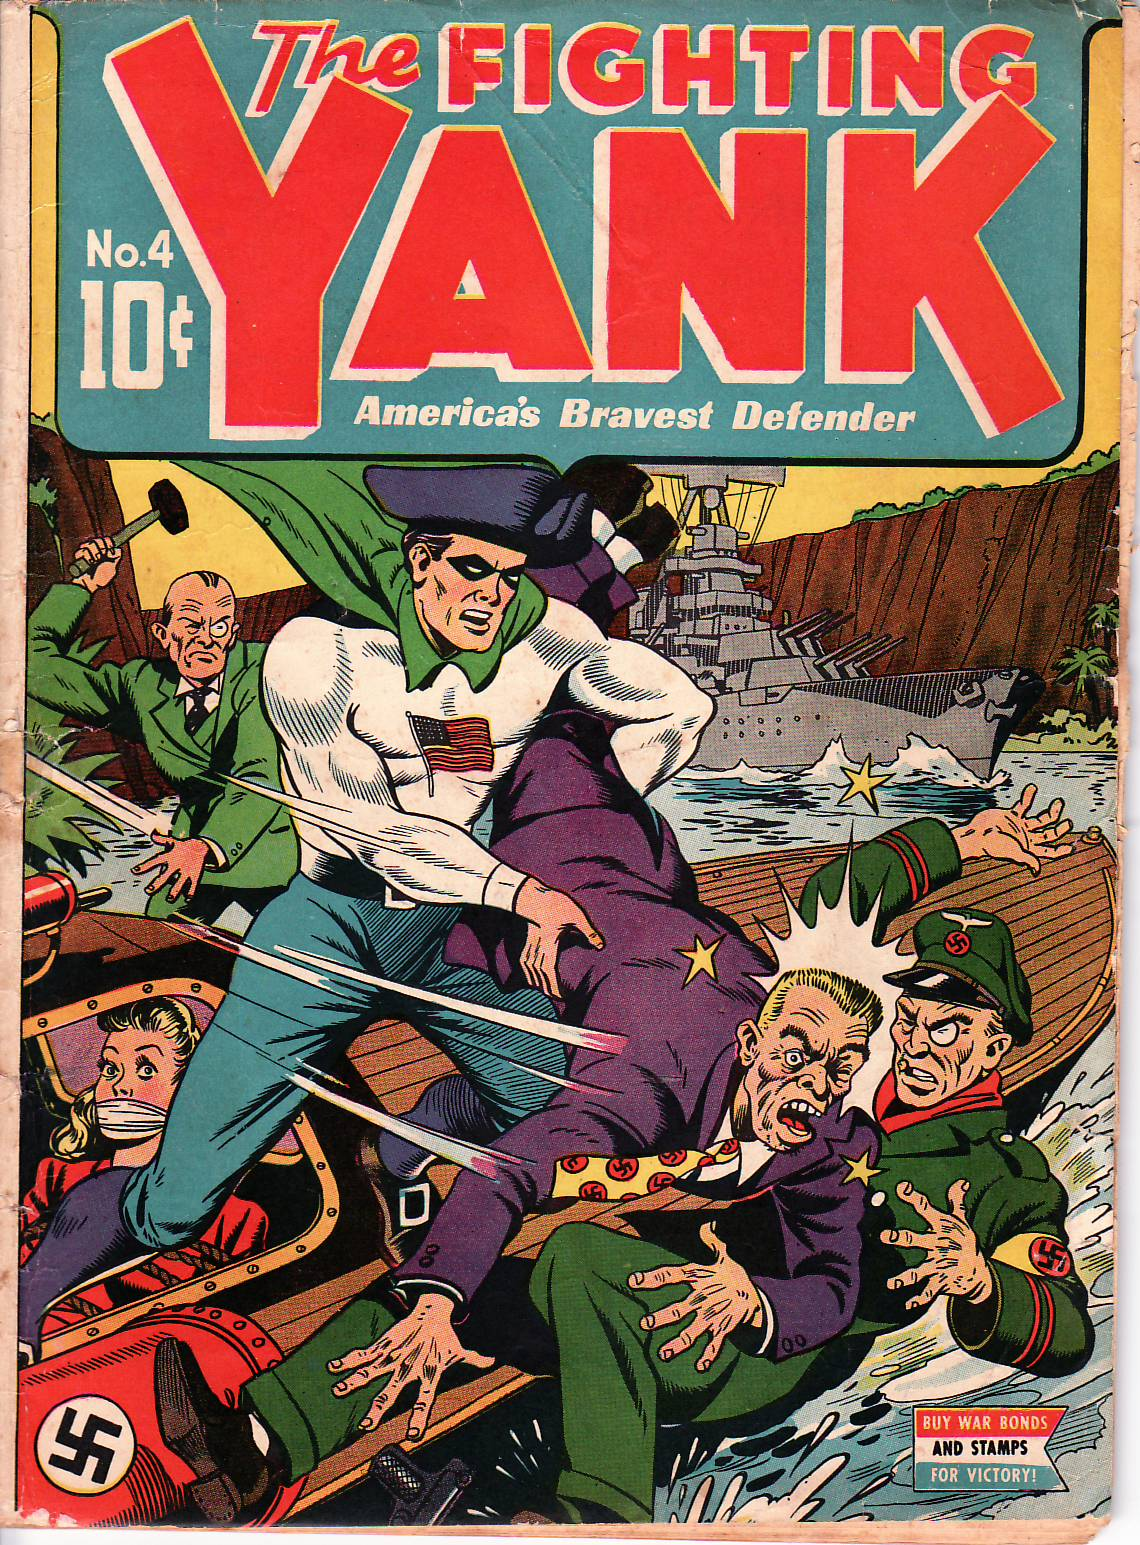 Fighting Yank #4, June 1943